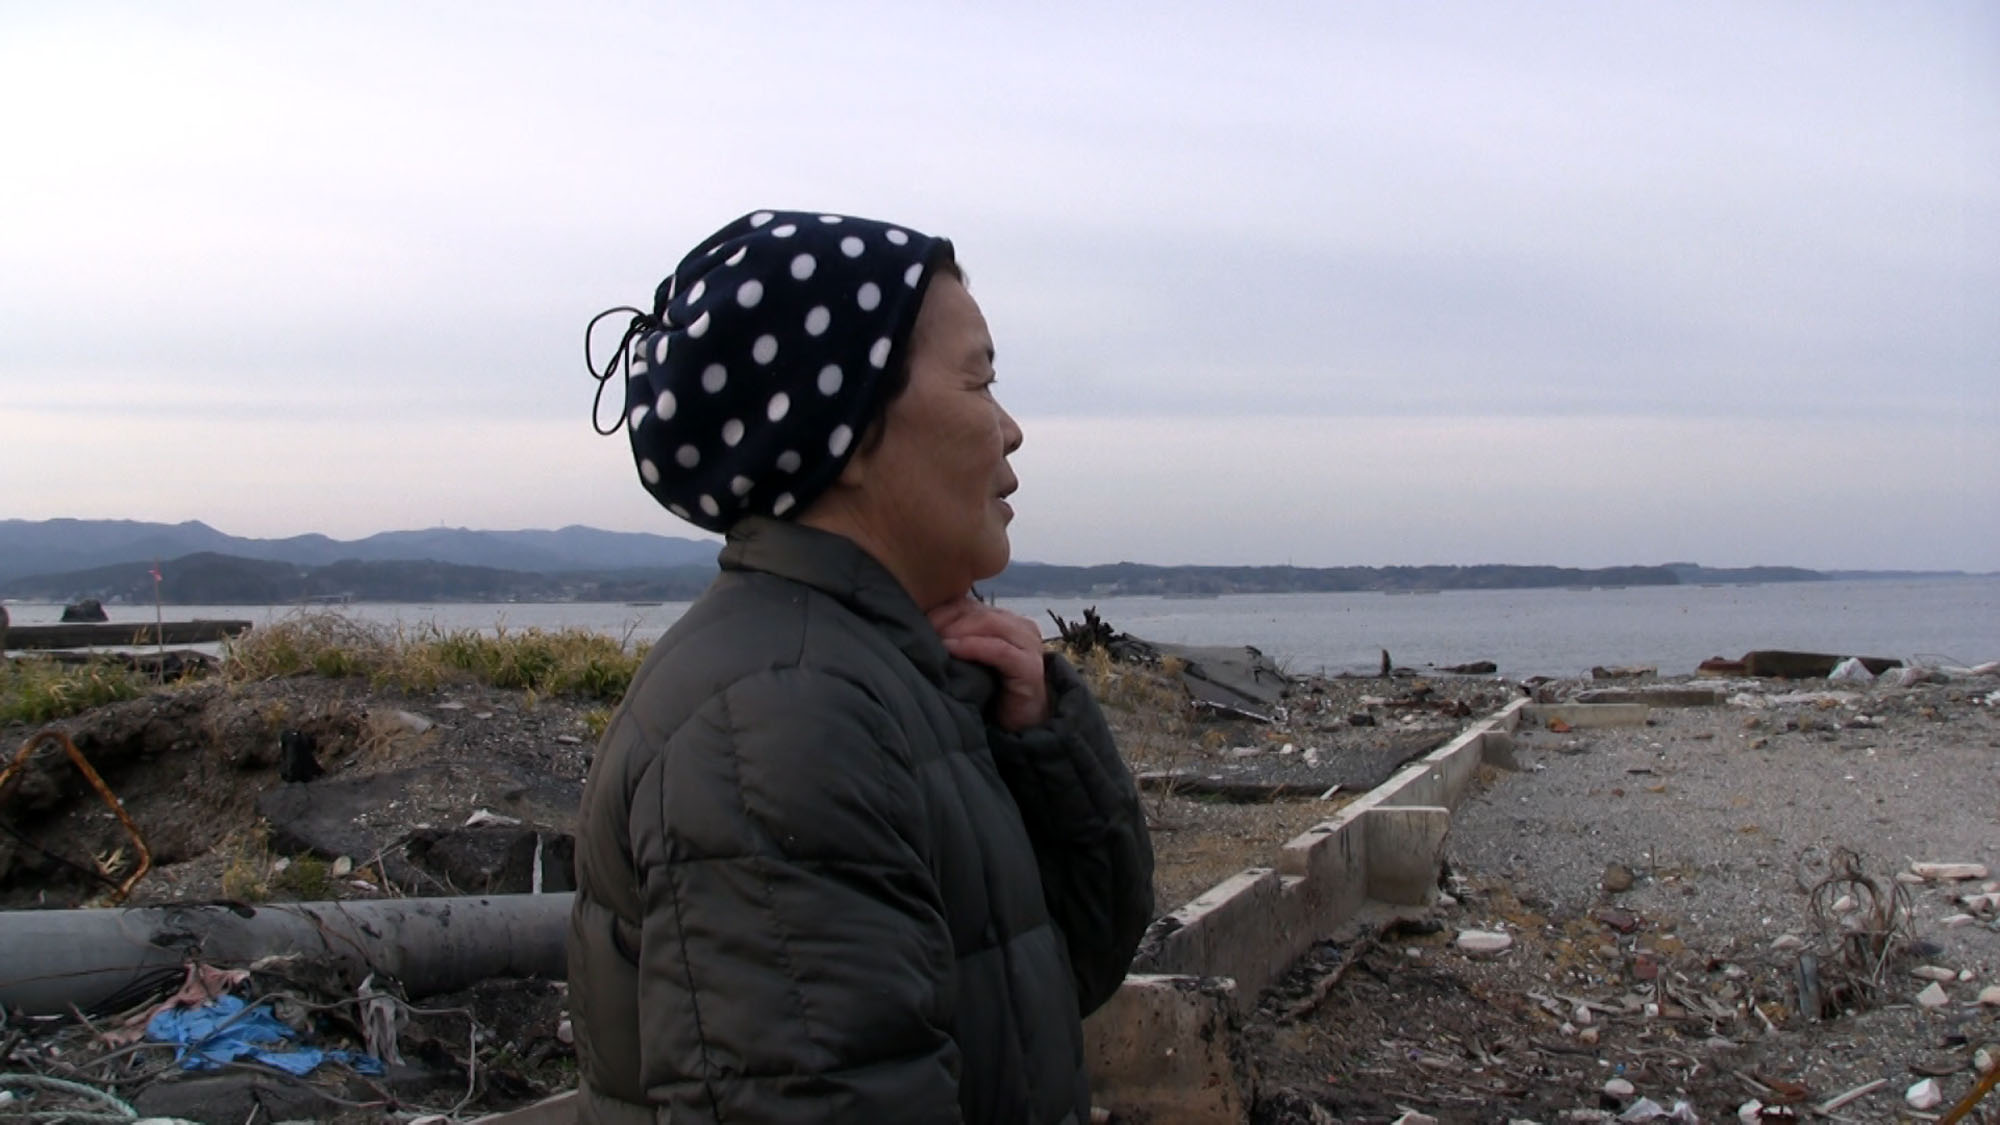 Coping with life after disaster: The subjects in 'Tremorings of Hope' are fairly direct in describing their experiences after the Great East Japan Earthquake of  2011. | © PEACETREE PRODUCTS